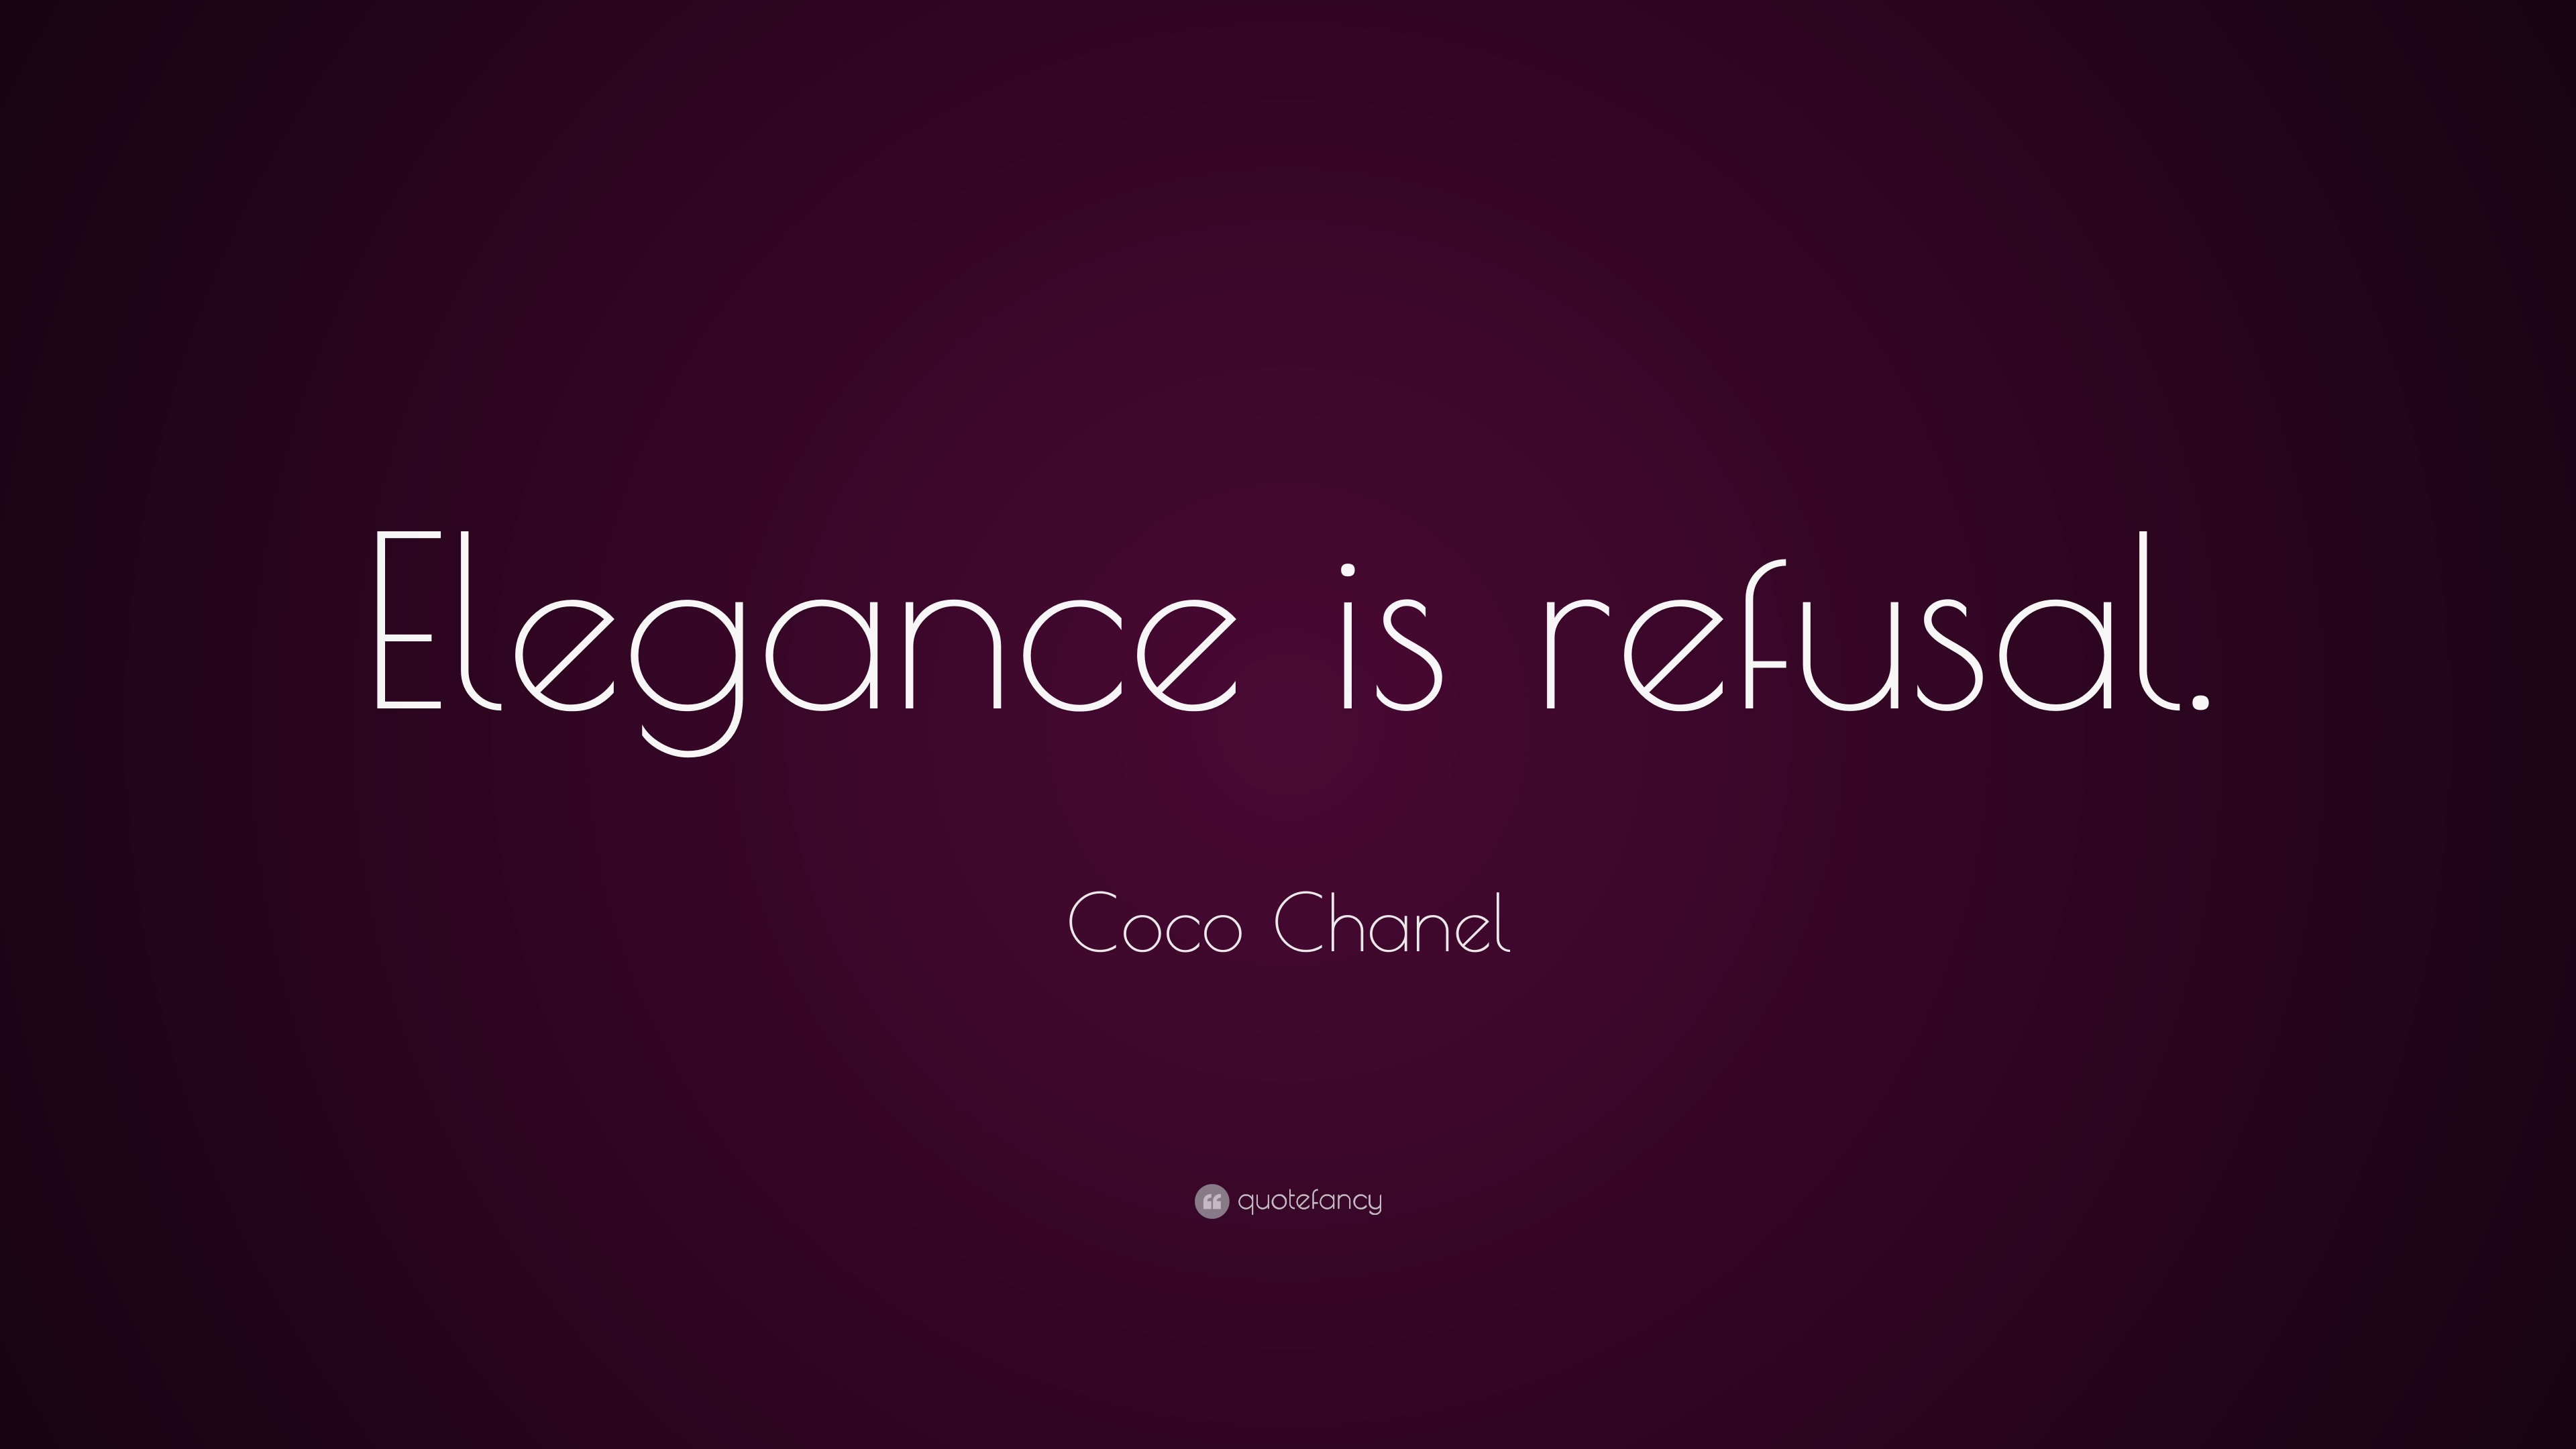 Coco Chanel Quotes Education